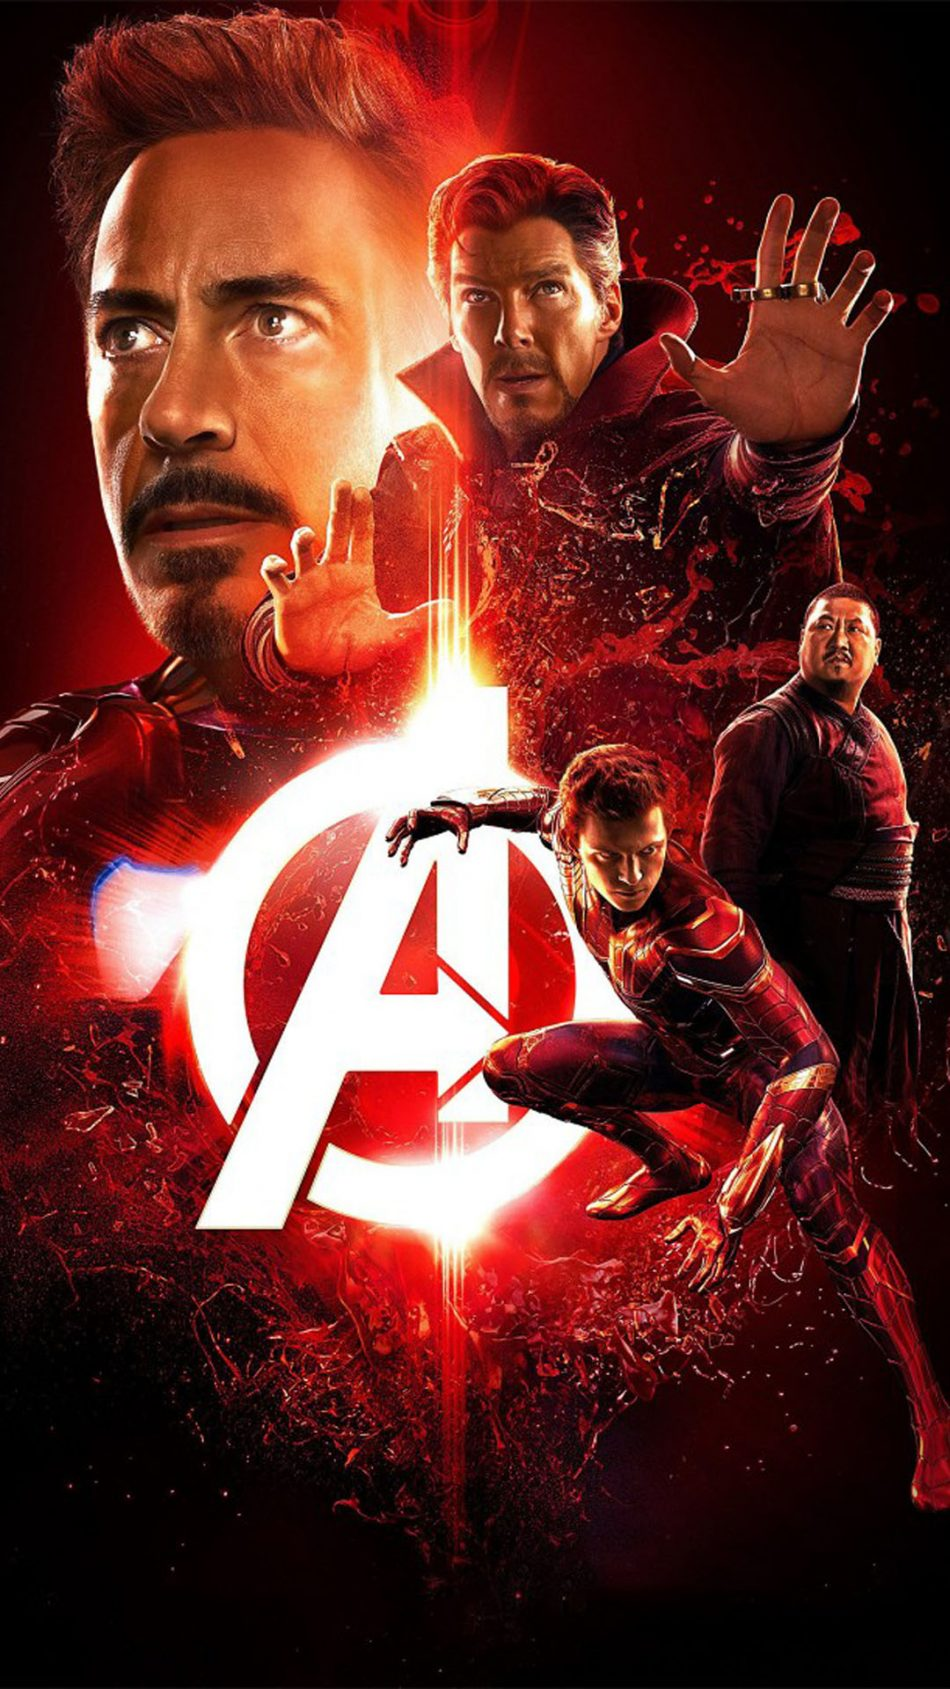 avengers infinity war 2018 - download free 100% pure hd quality